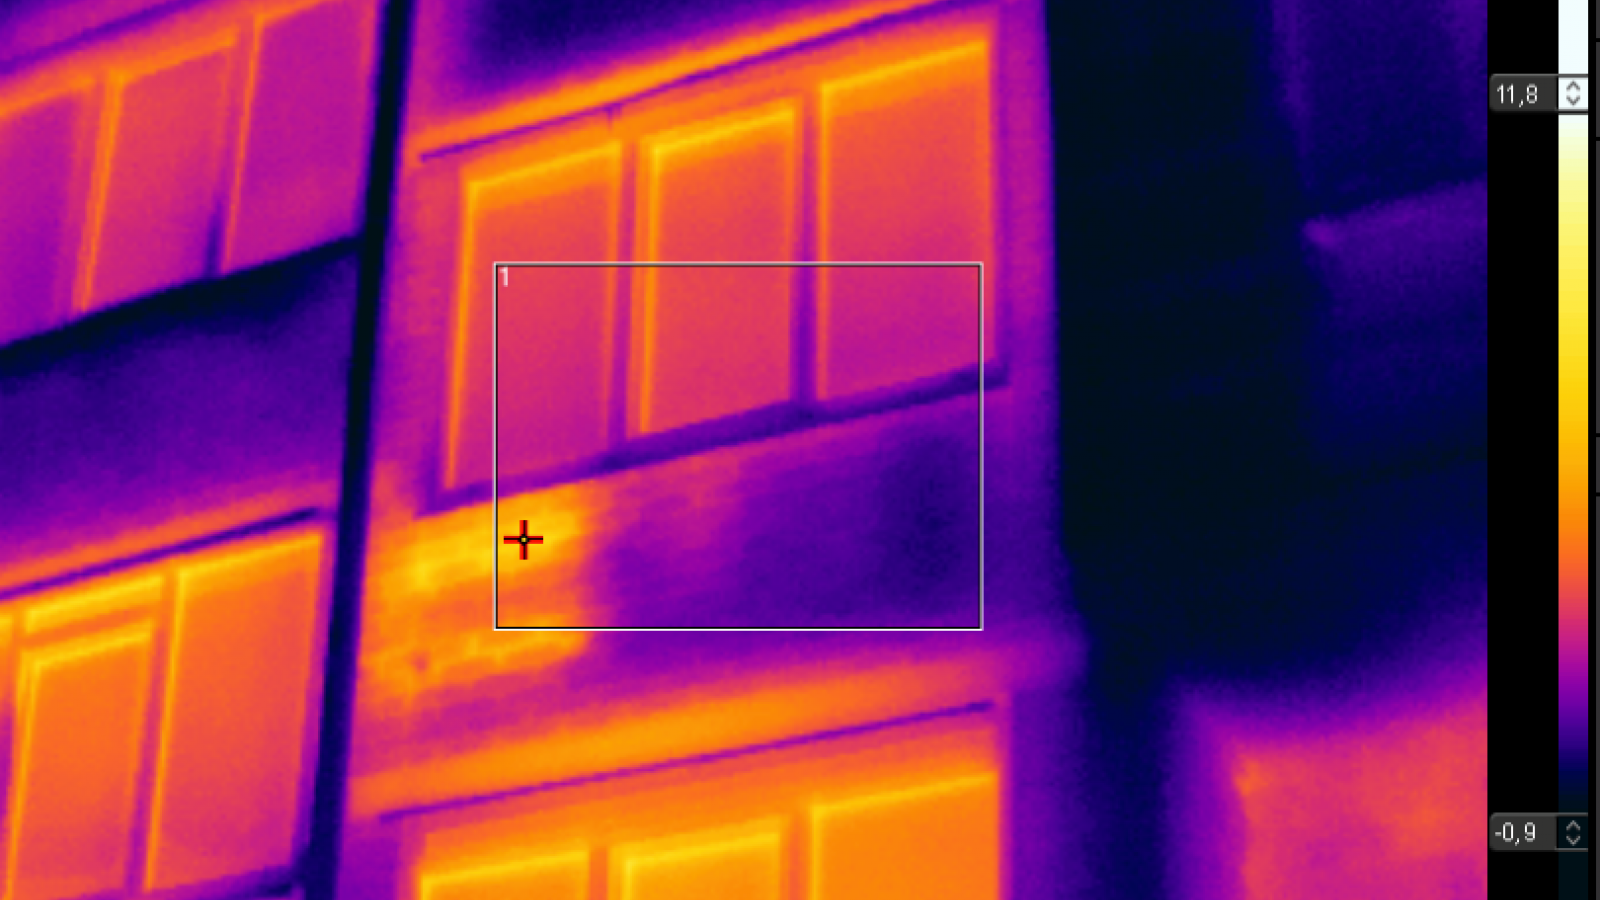 Photo of a building taken with IR camera